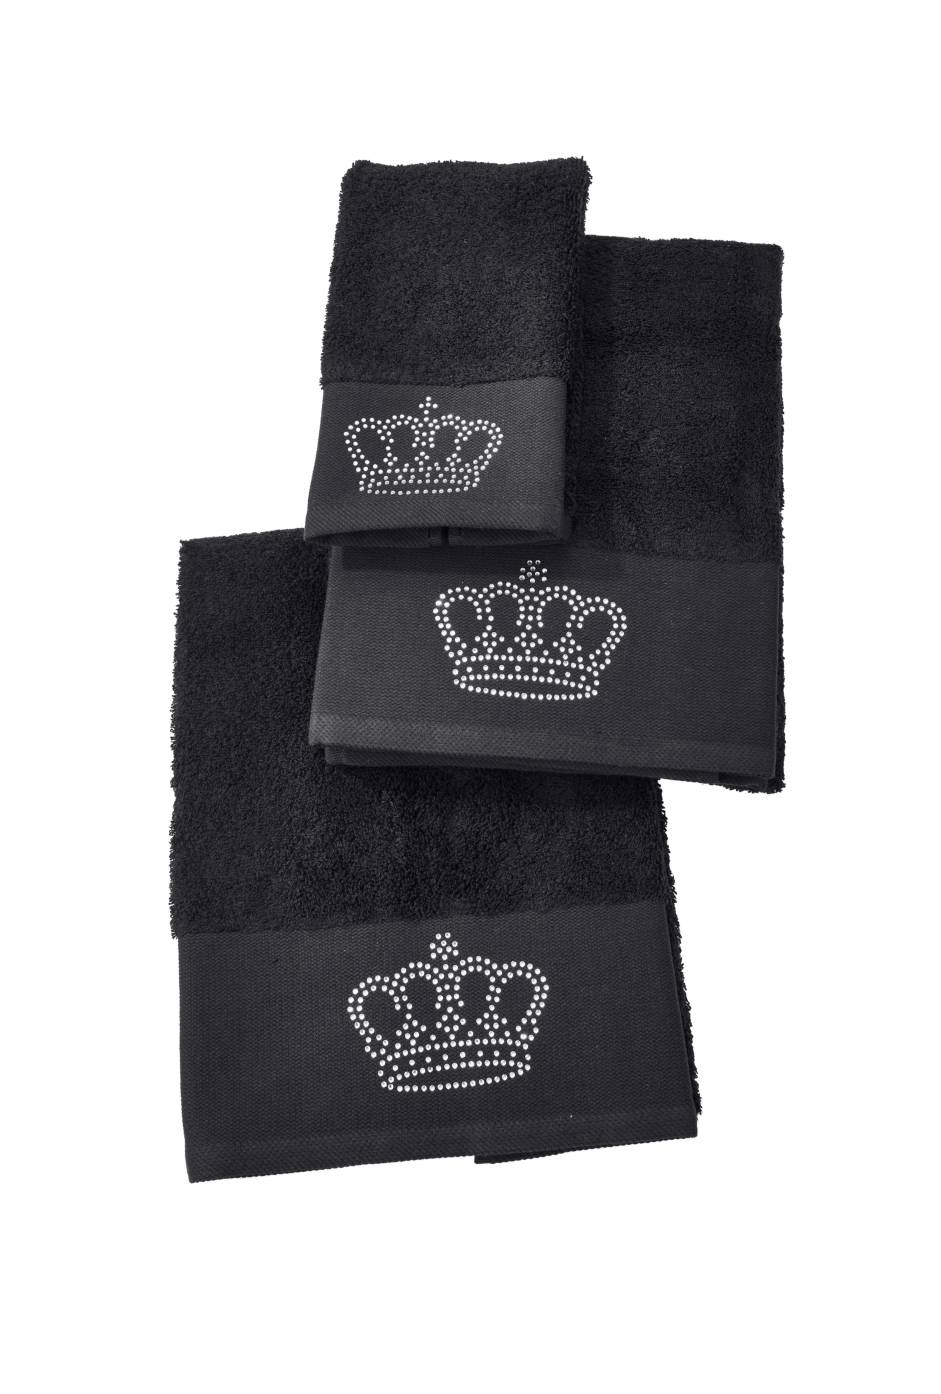 CROWN Black